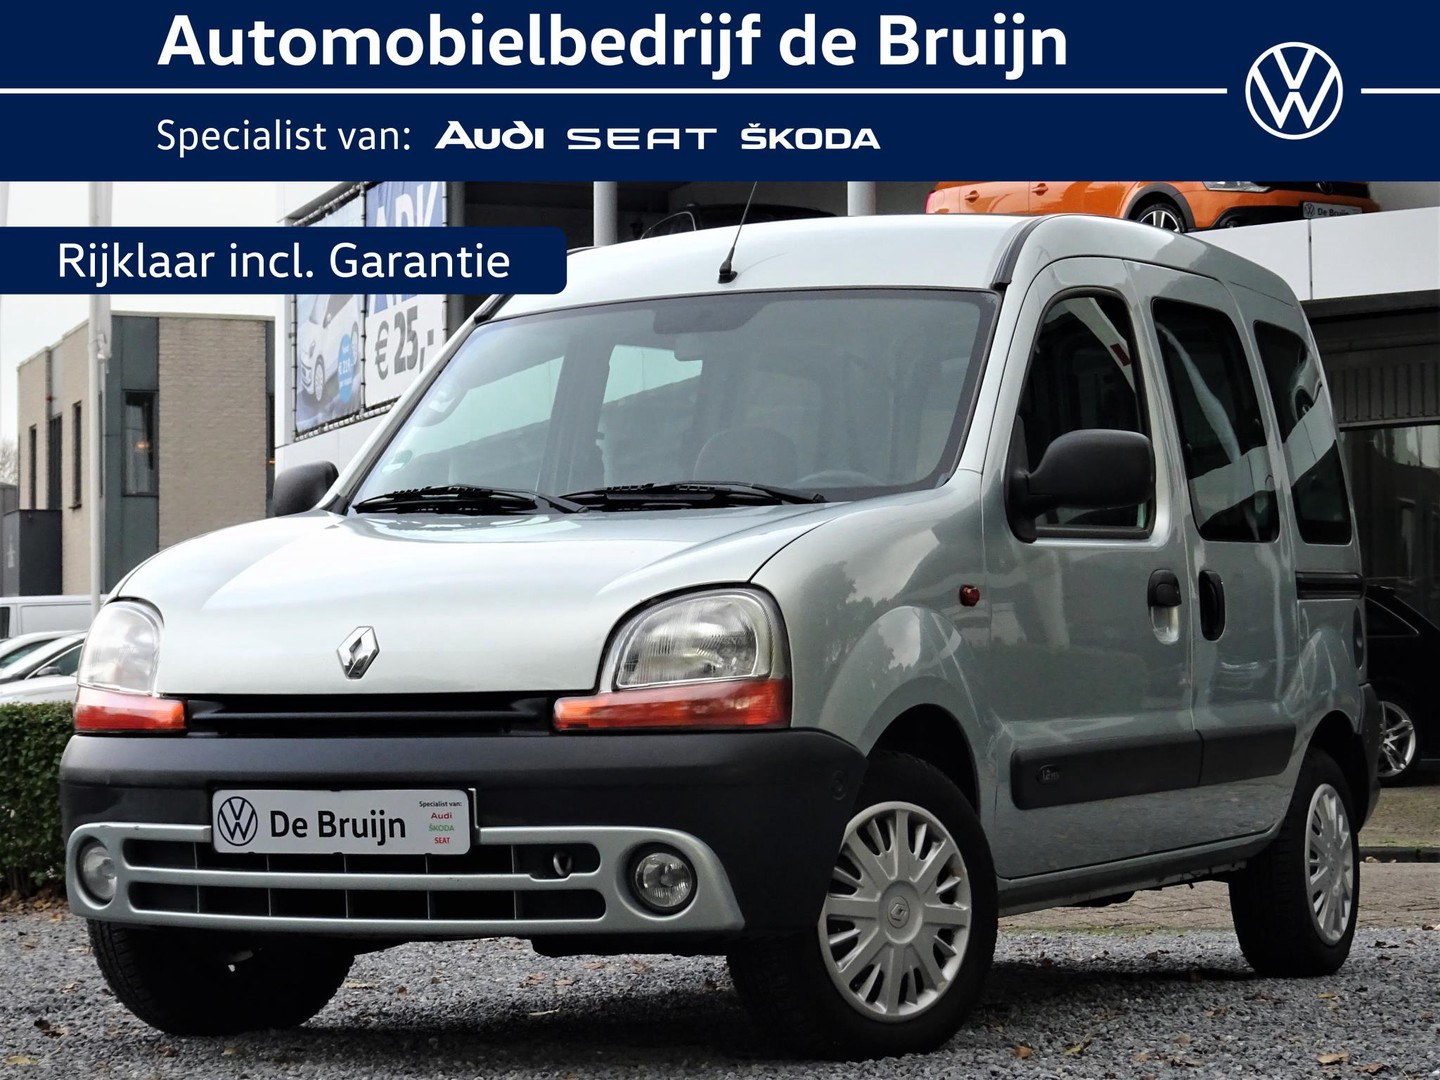 Renault Kangoo 1.2-16v expression (in consignatie) (rolstoelsysteem,radio,airco)